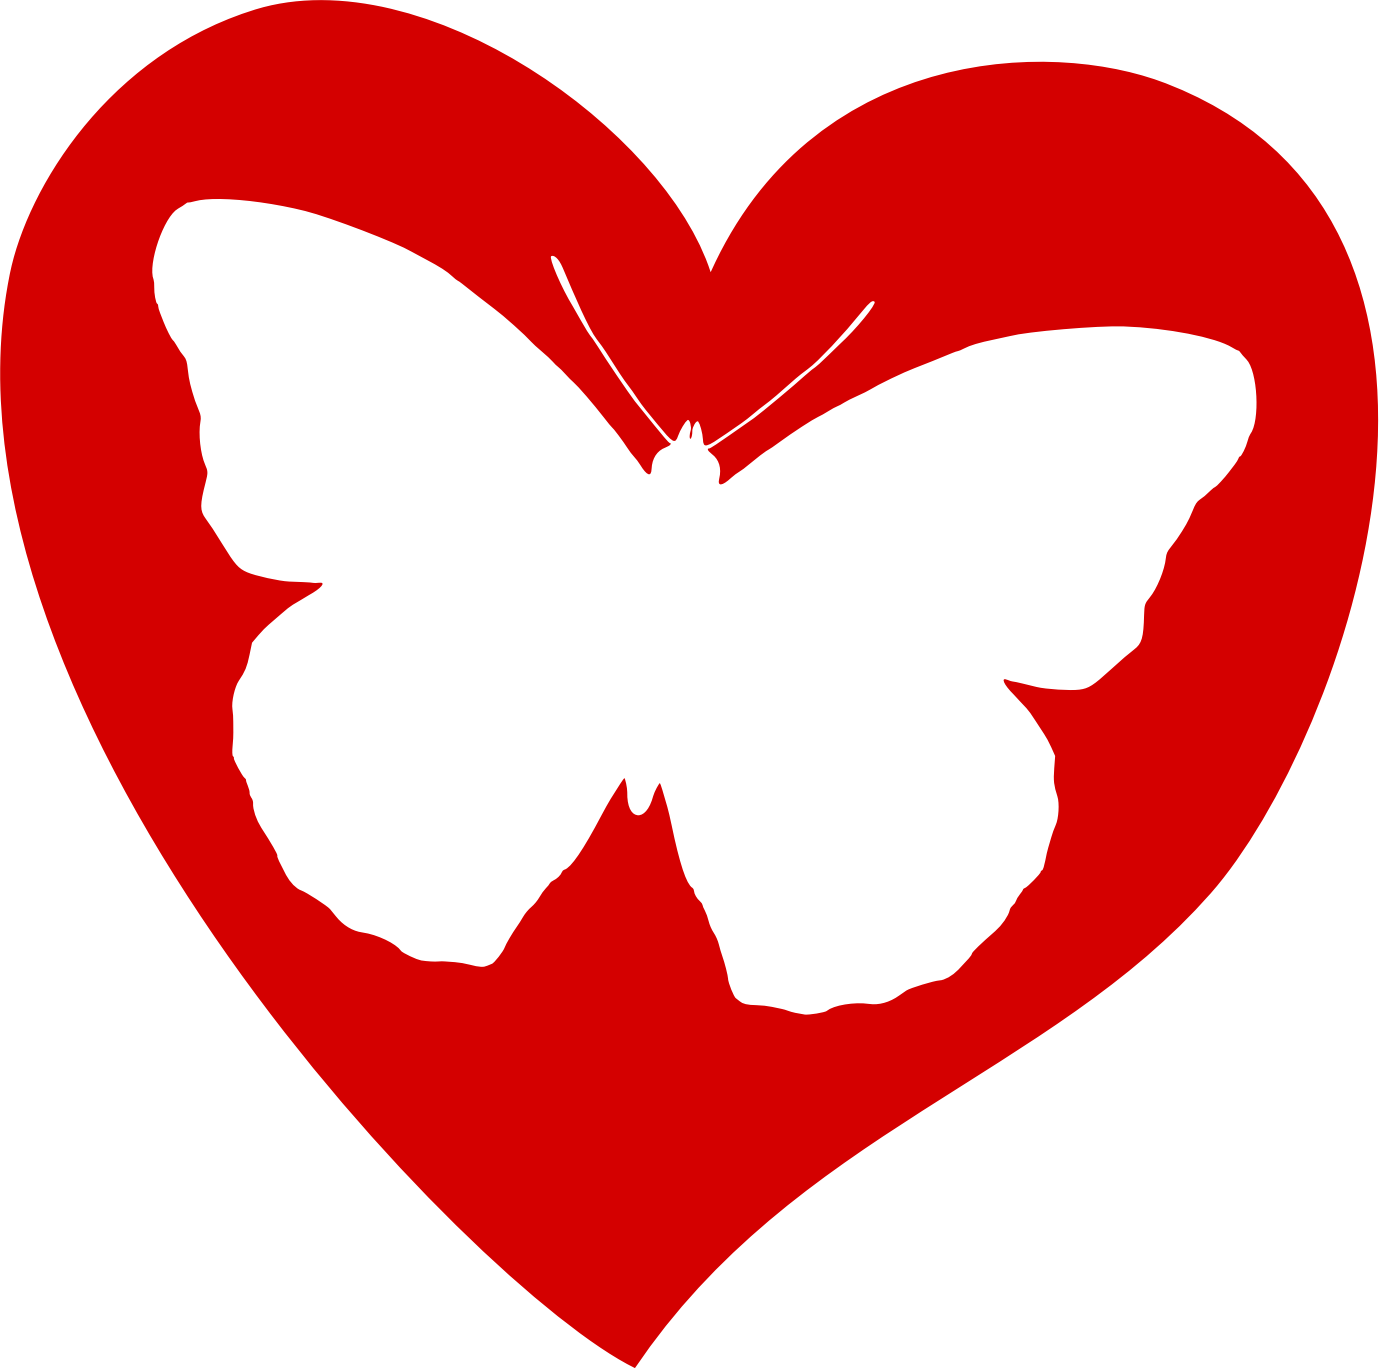 Butterfly clipart heart Clipart butterfly butterfly collection heart